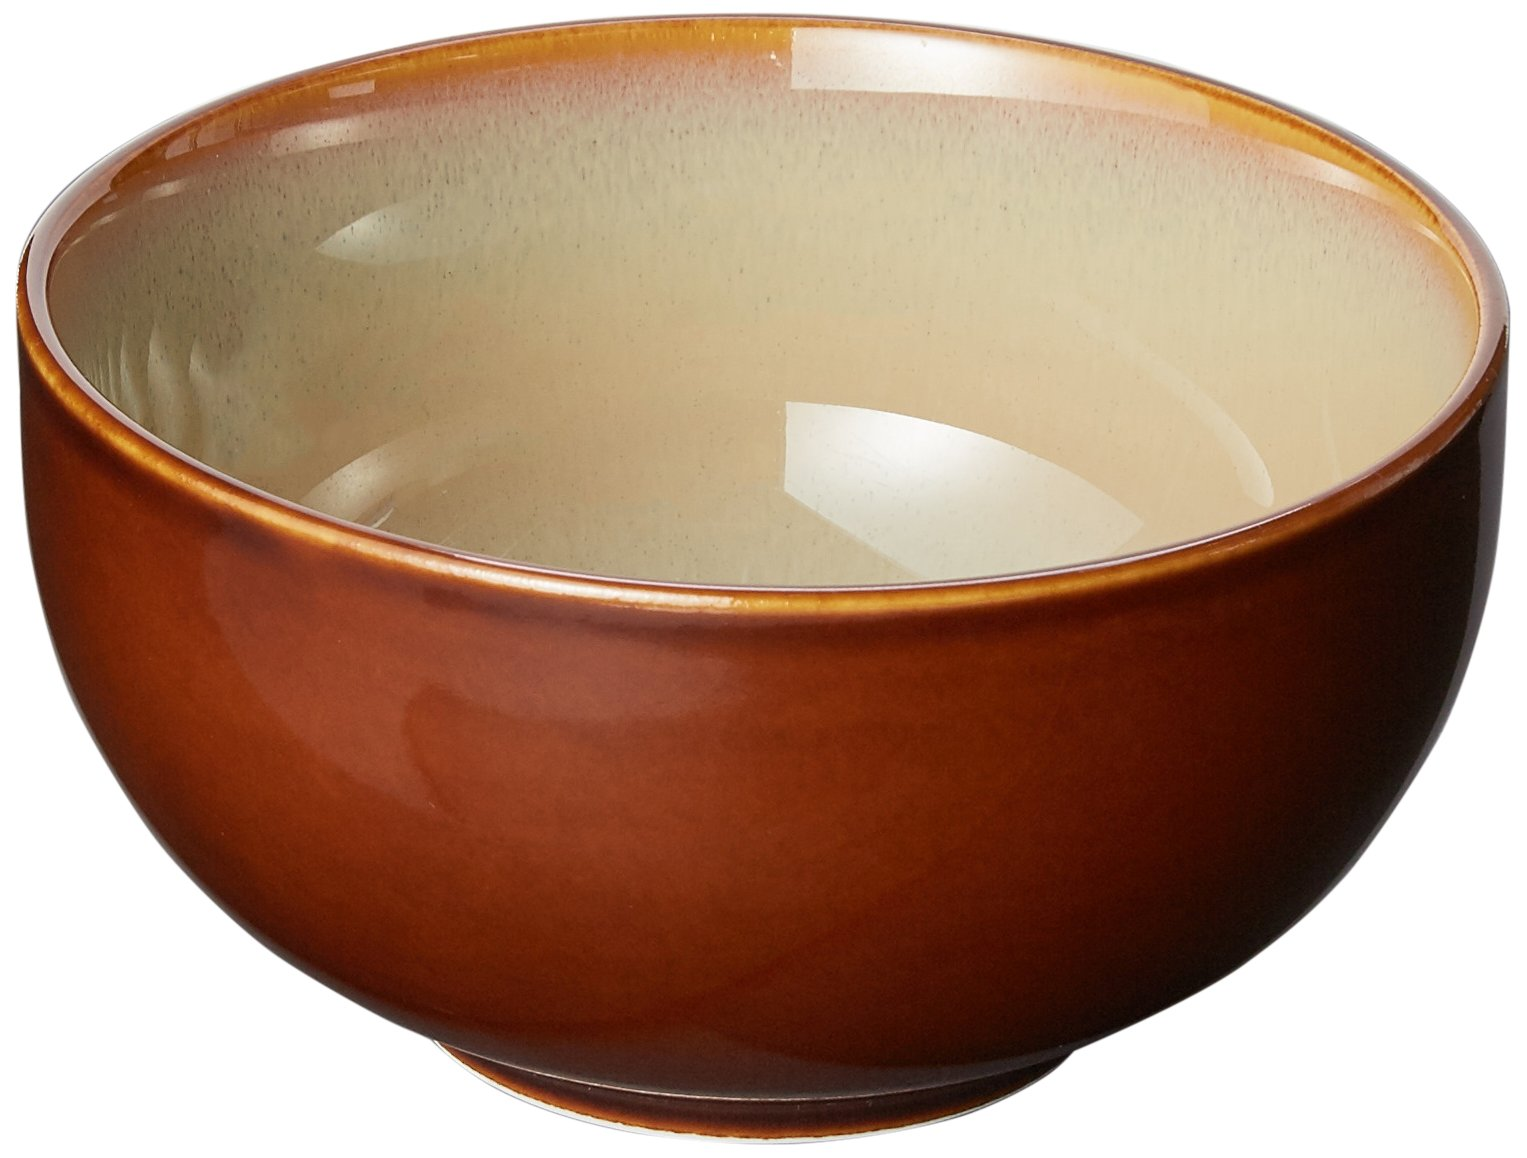 Oneida Foodservice Rustic Sama Accent Bowl, 15 oz, Set of 48